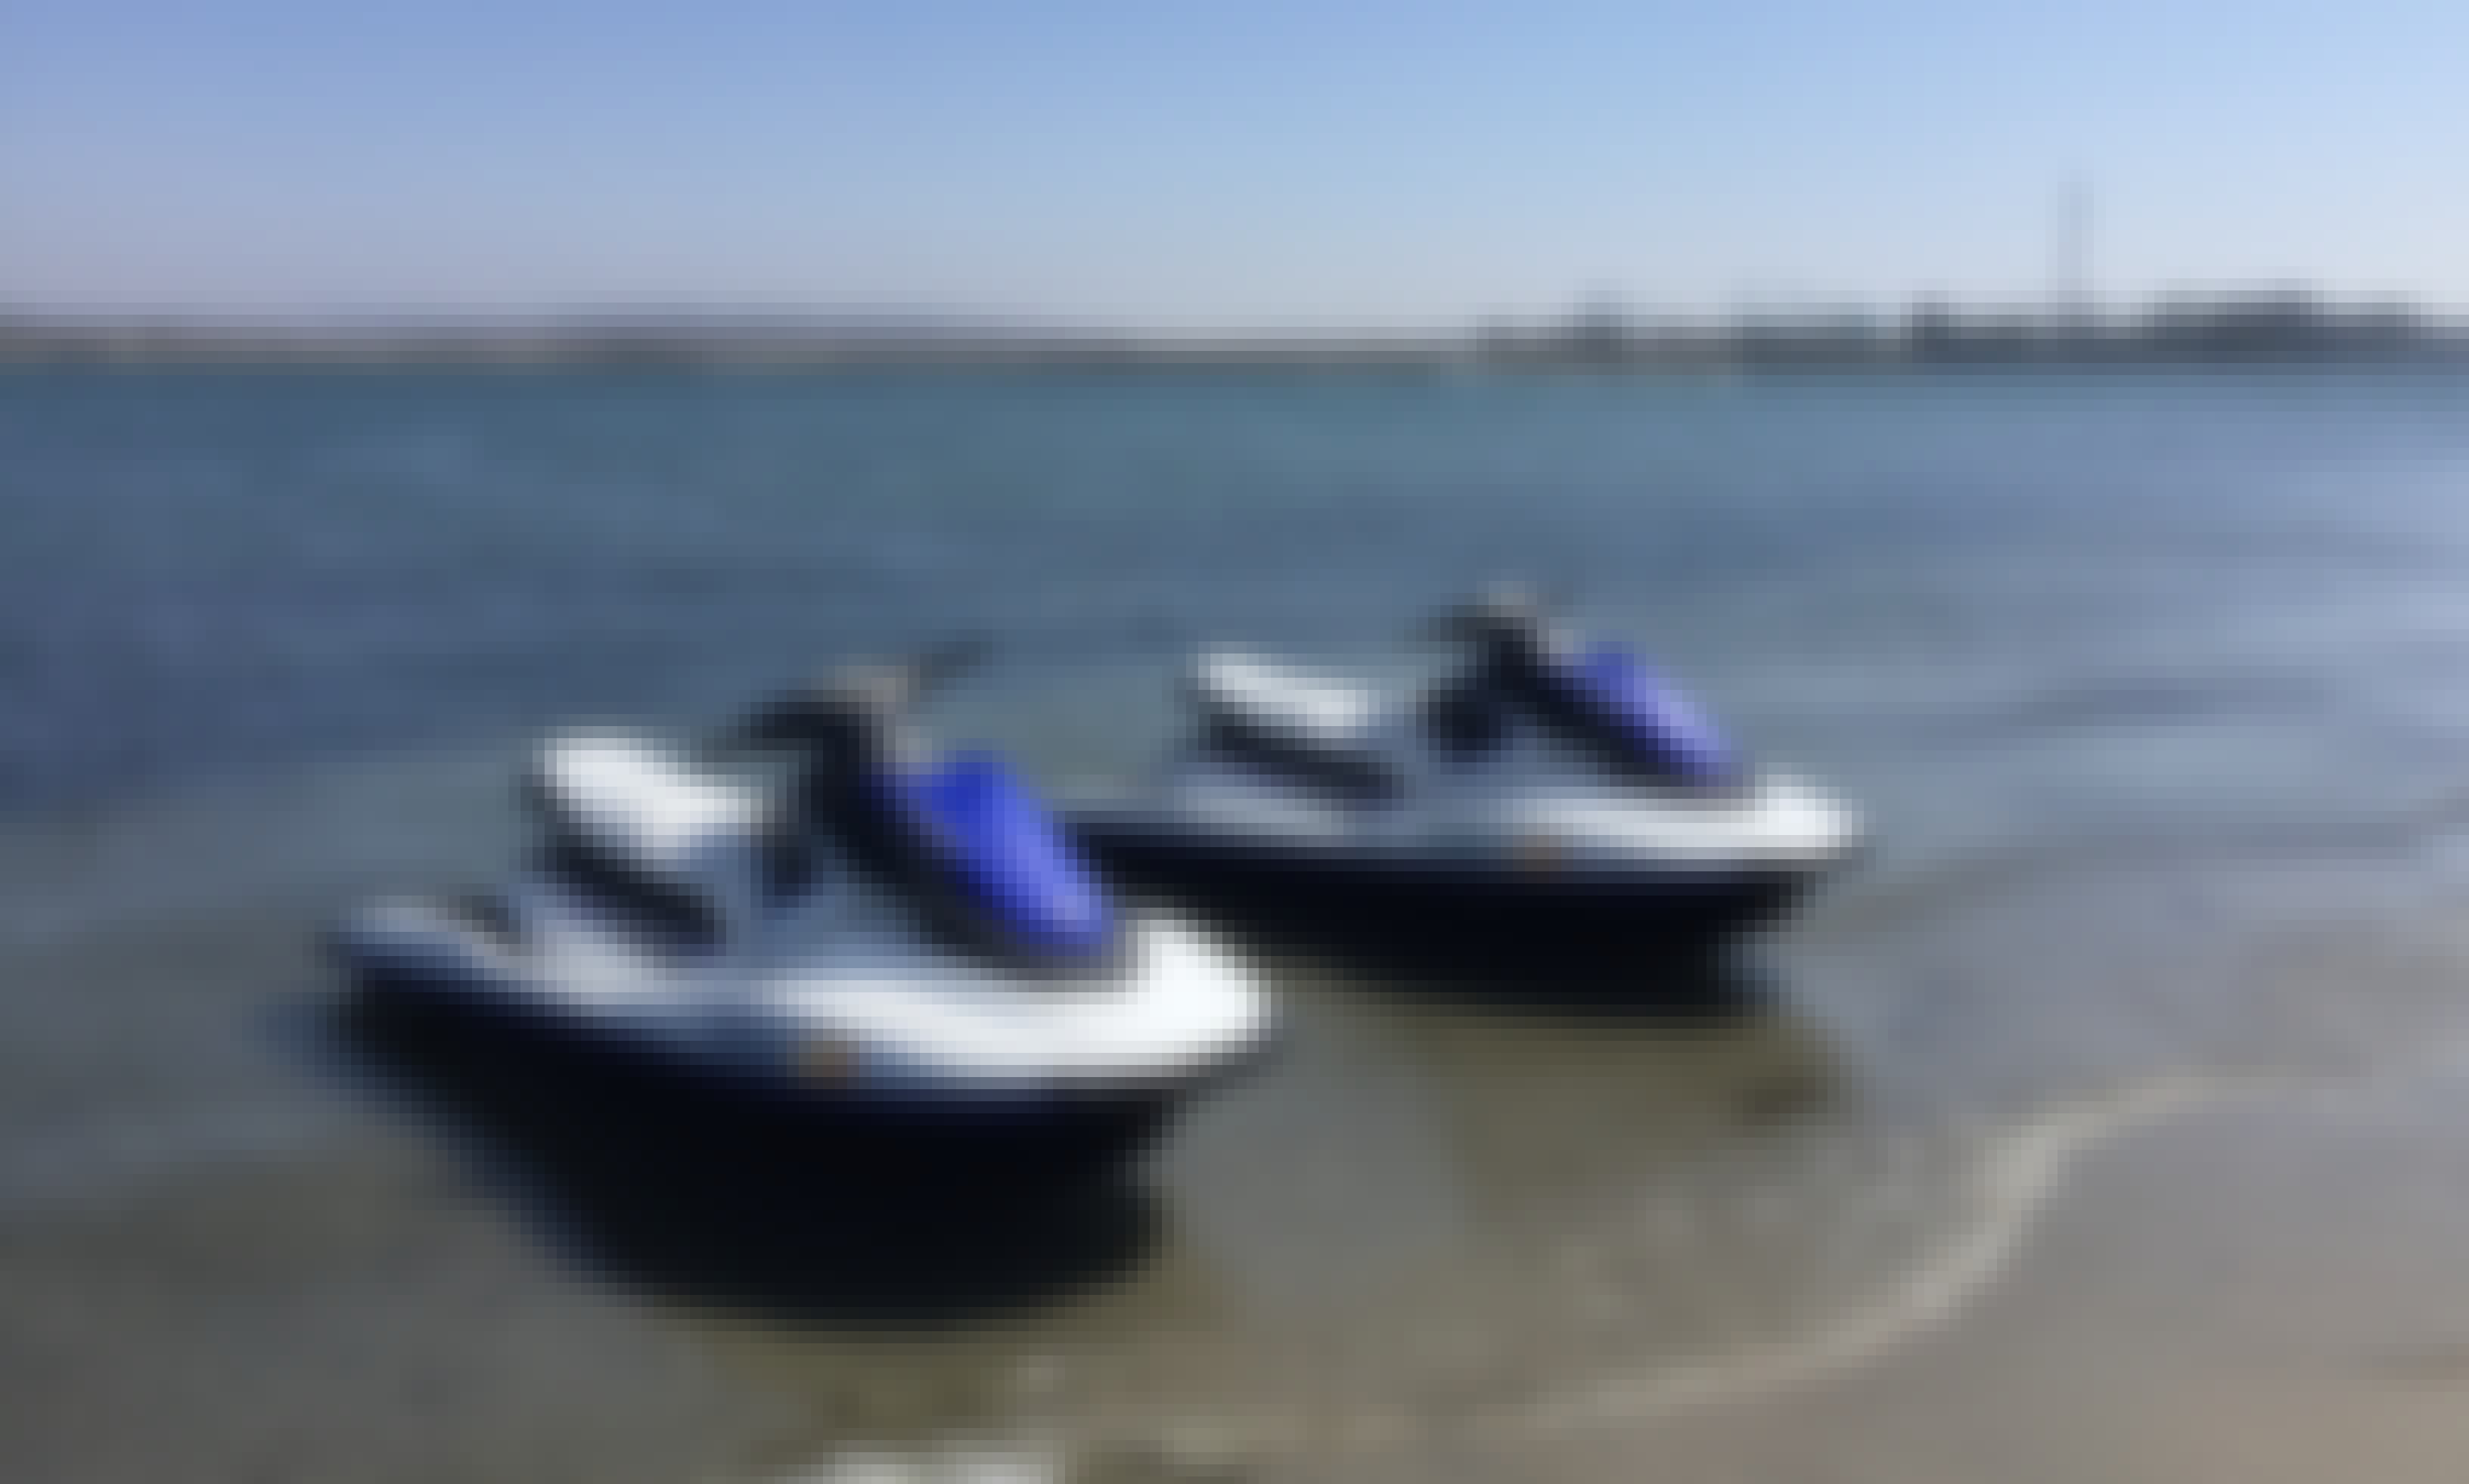 2x Yamaha Jet skis for rent in Newport Beach